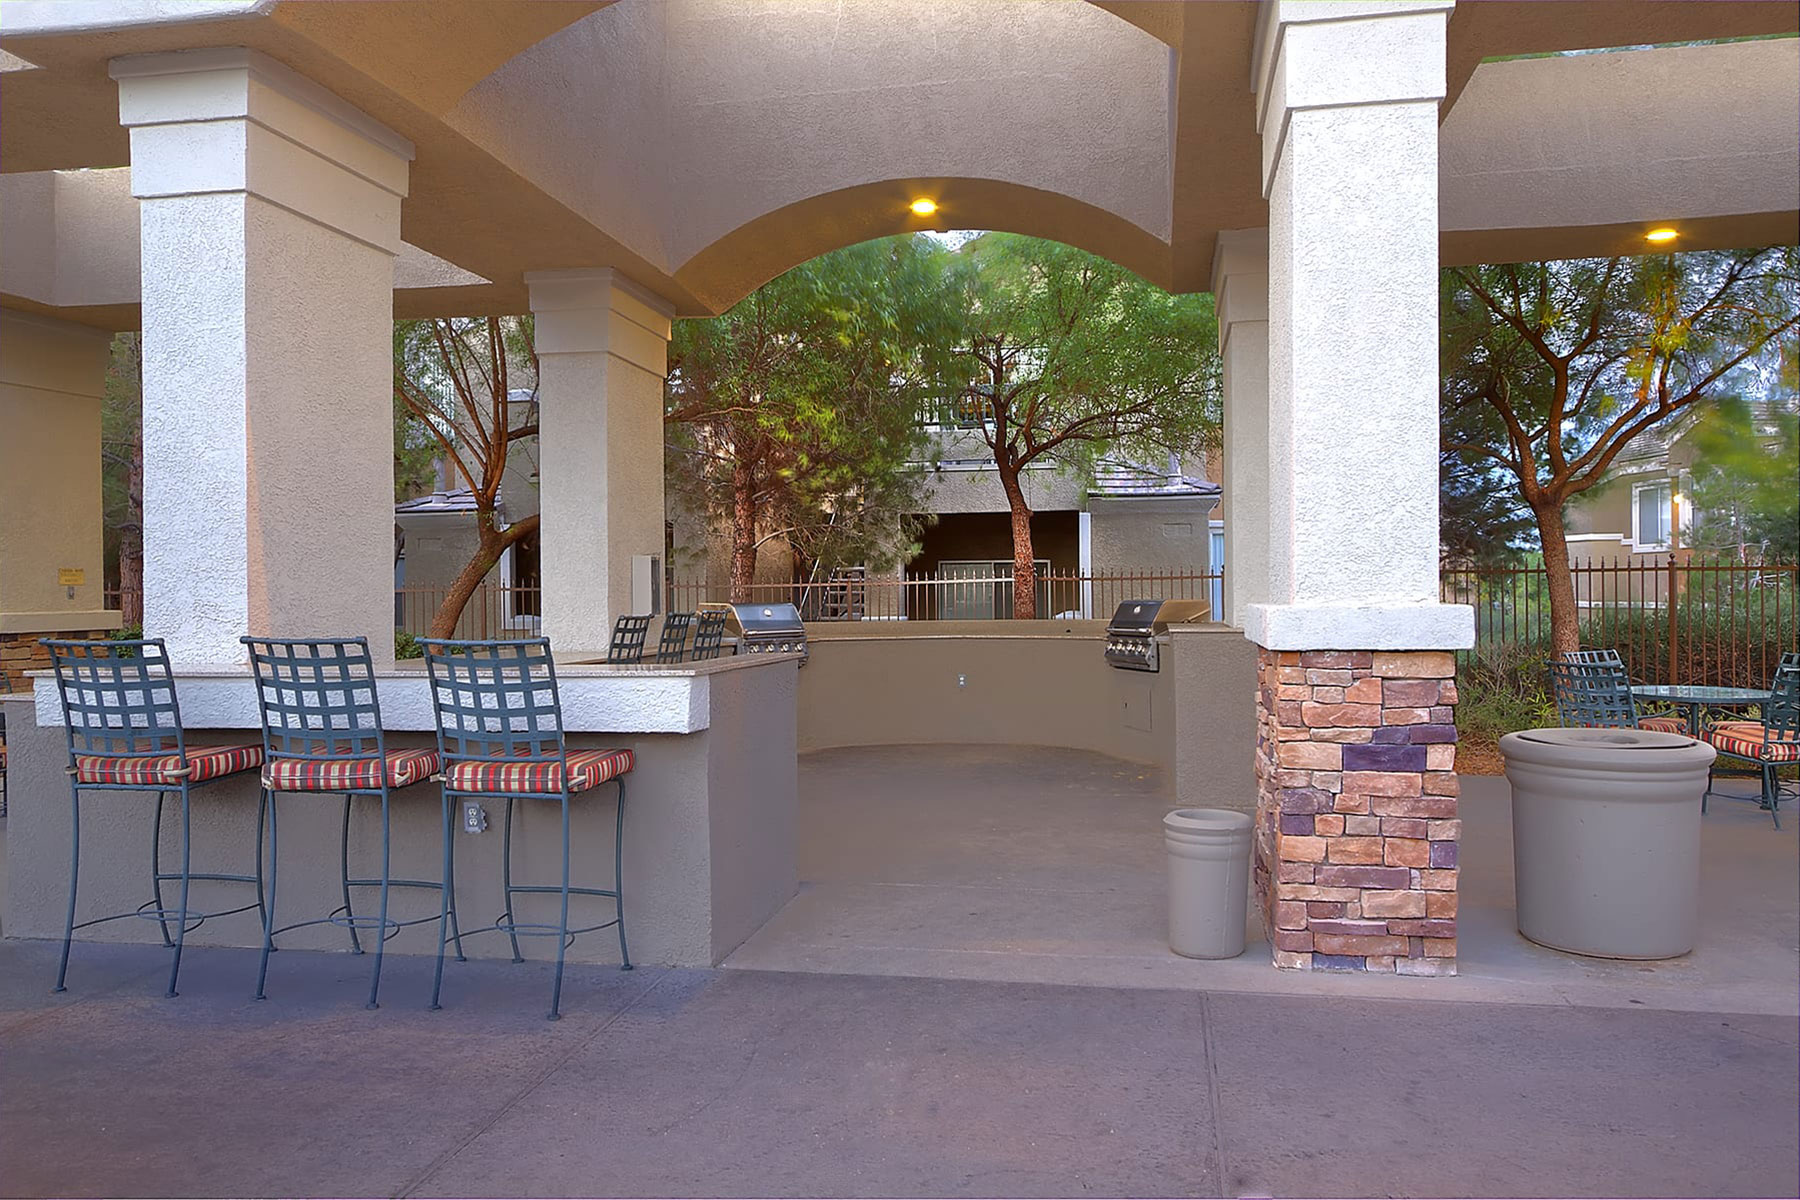 An inviting outdoor covered patio space with a bartop surface, comfortable stools and built in BBQ grills.